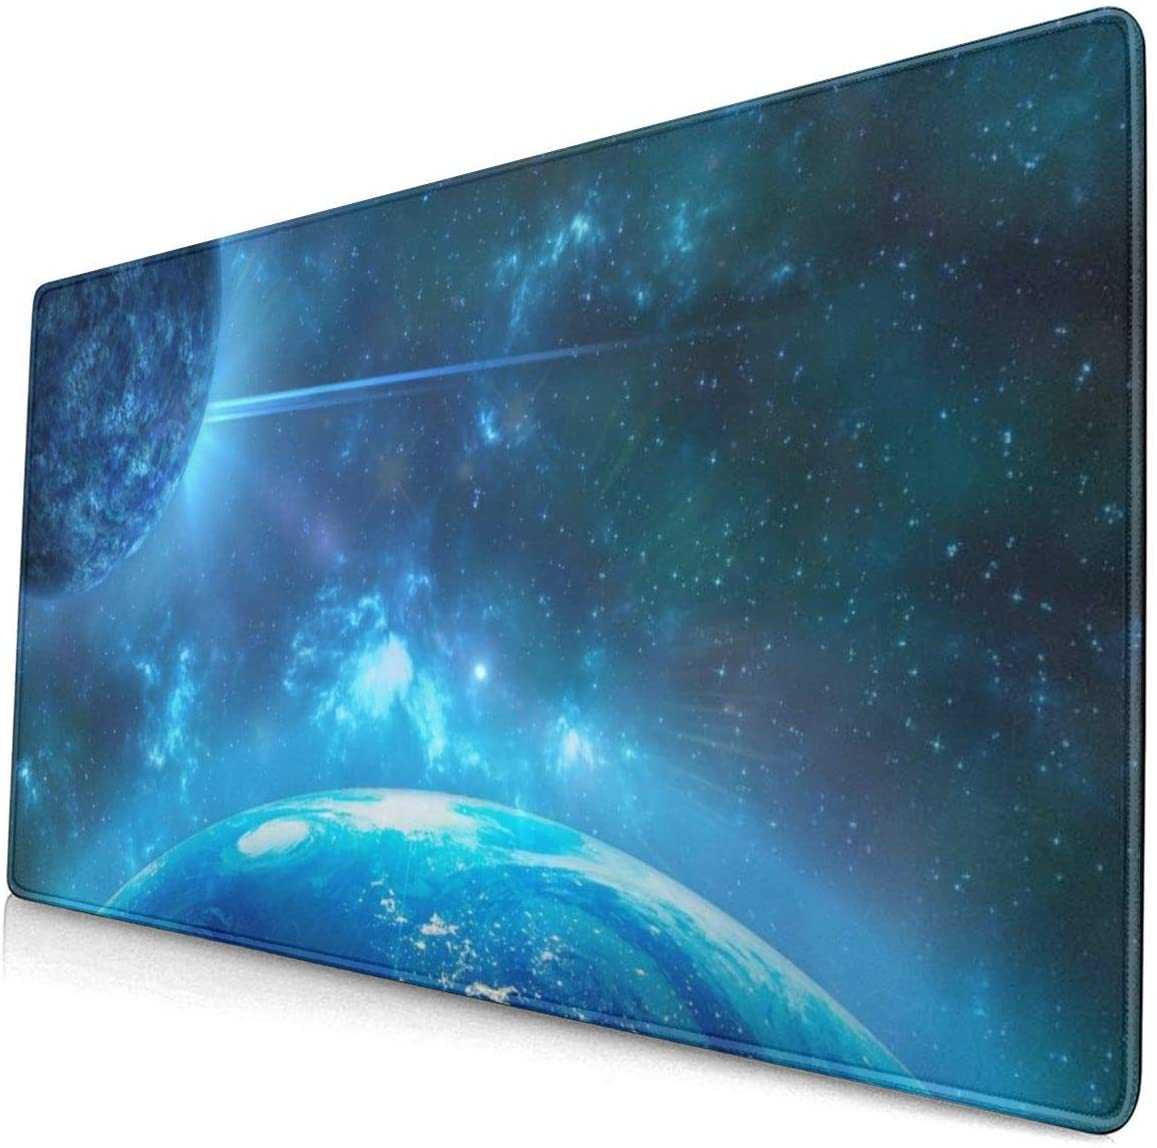 Professional Large Mouse Pad & Computer Game Mouse Mat (29.5x15.7 inch) XXL Galaxy Earth